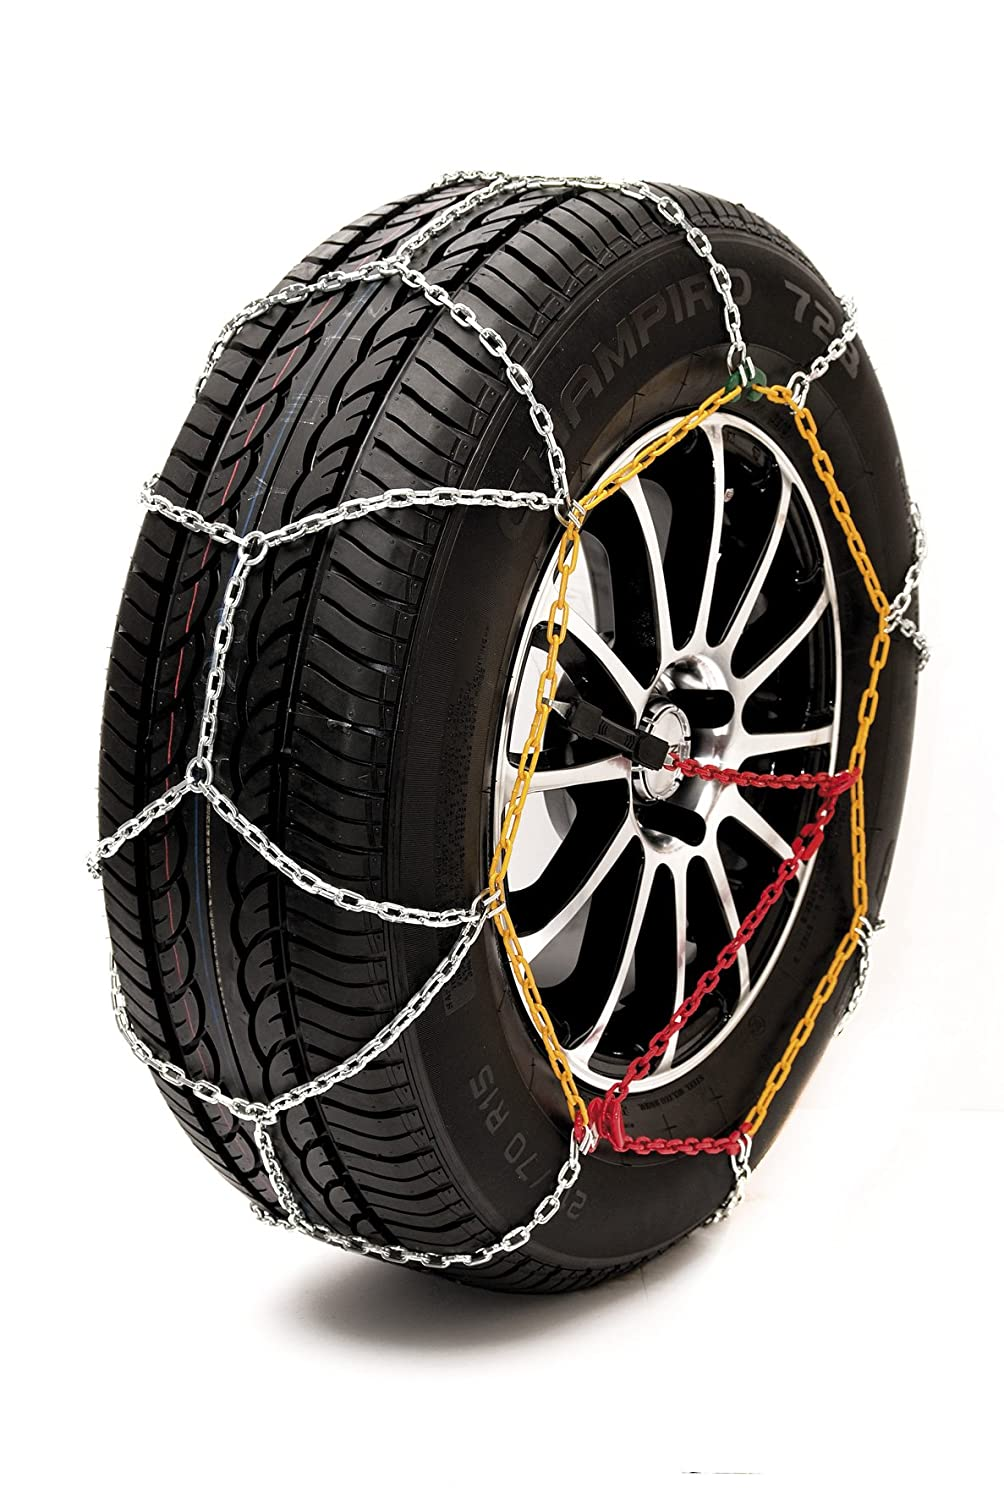 Sumex Husky Winter Classic Alloy Steel Snow Chains for 18' Car Wheel Tires (255/40 R18)